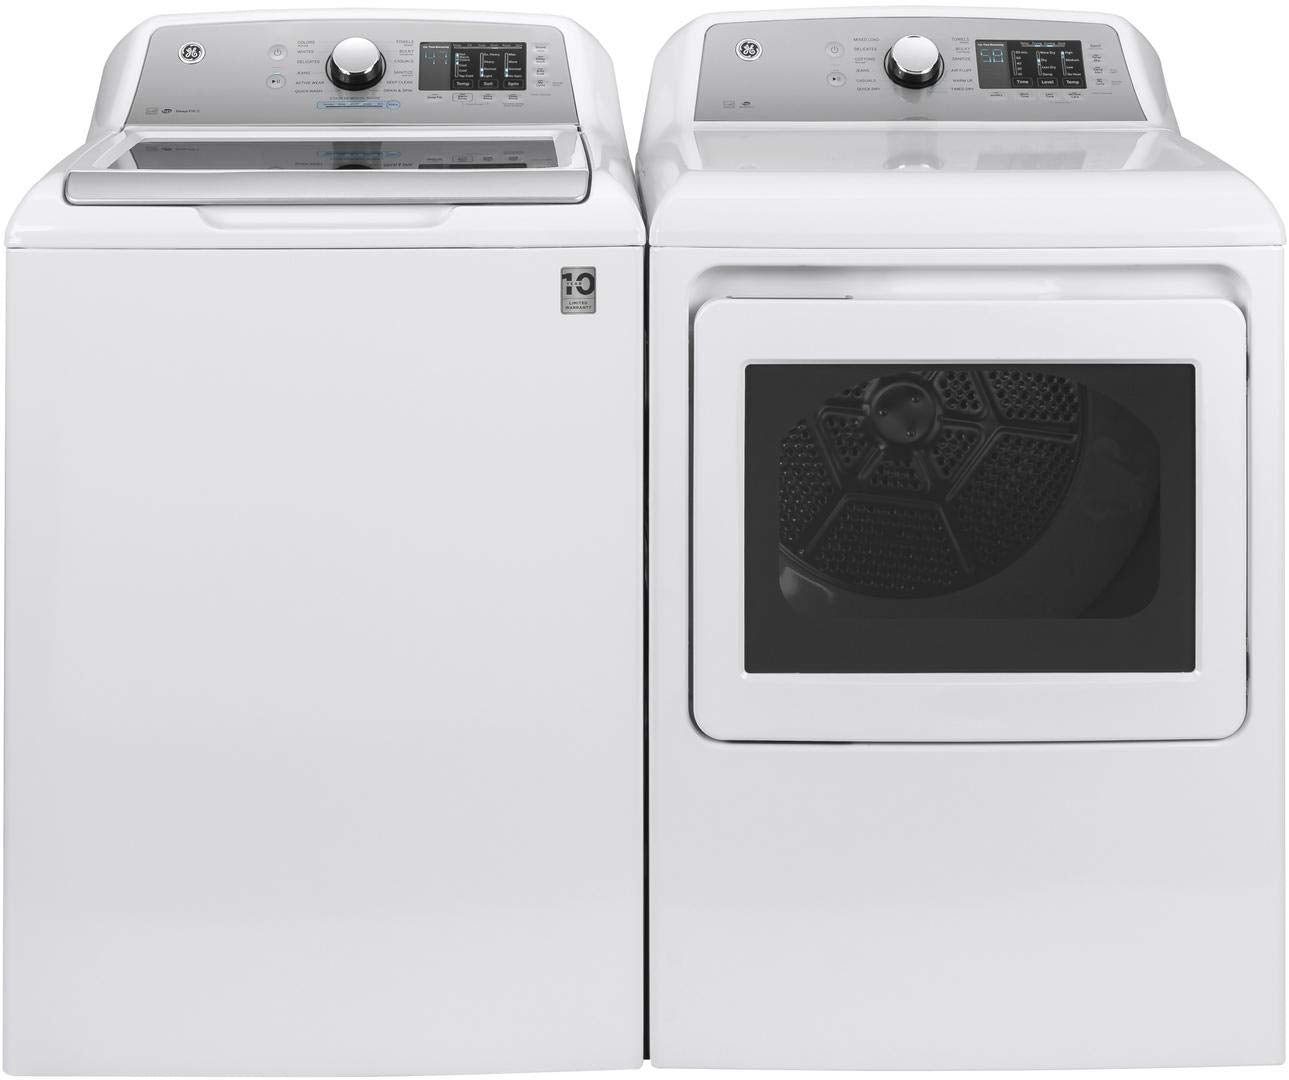 "GE Top Load Laundry Pair with GTW720BSNWS 27"" Washer and GTD72EBSNWS 27"" Electric Dryer in White"